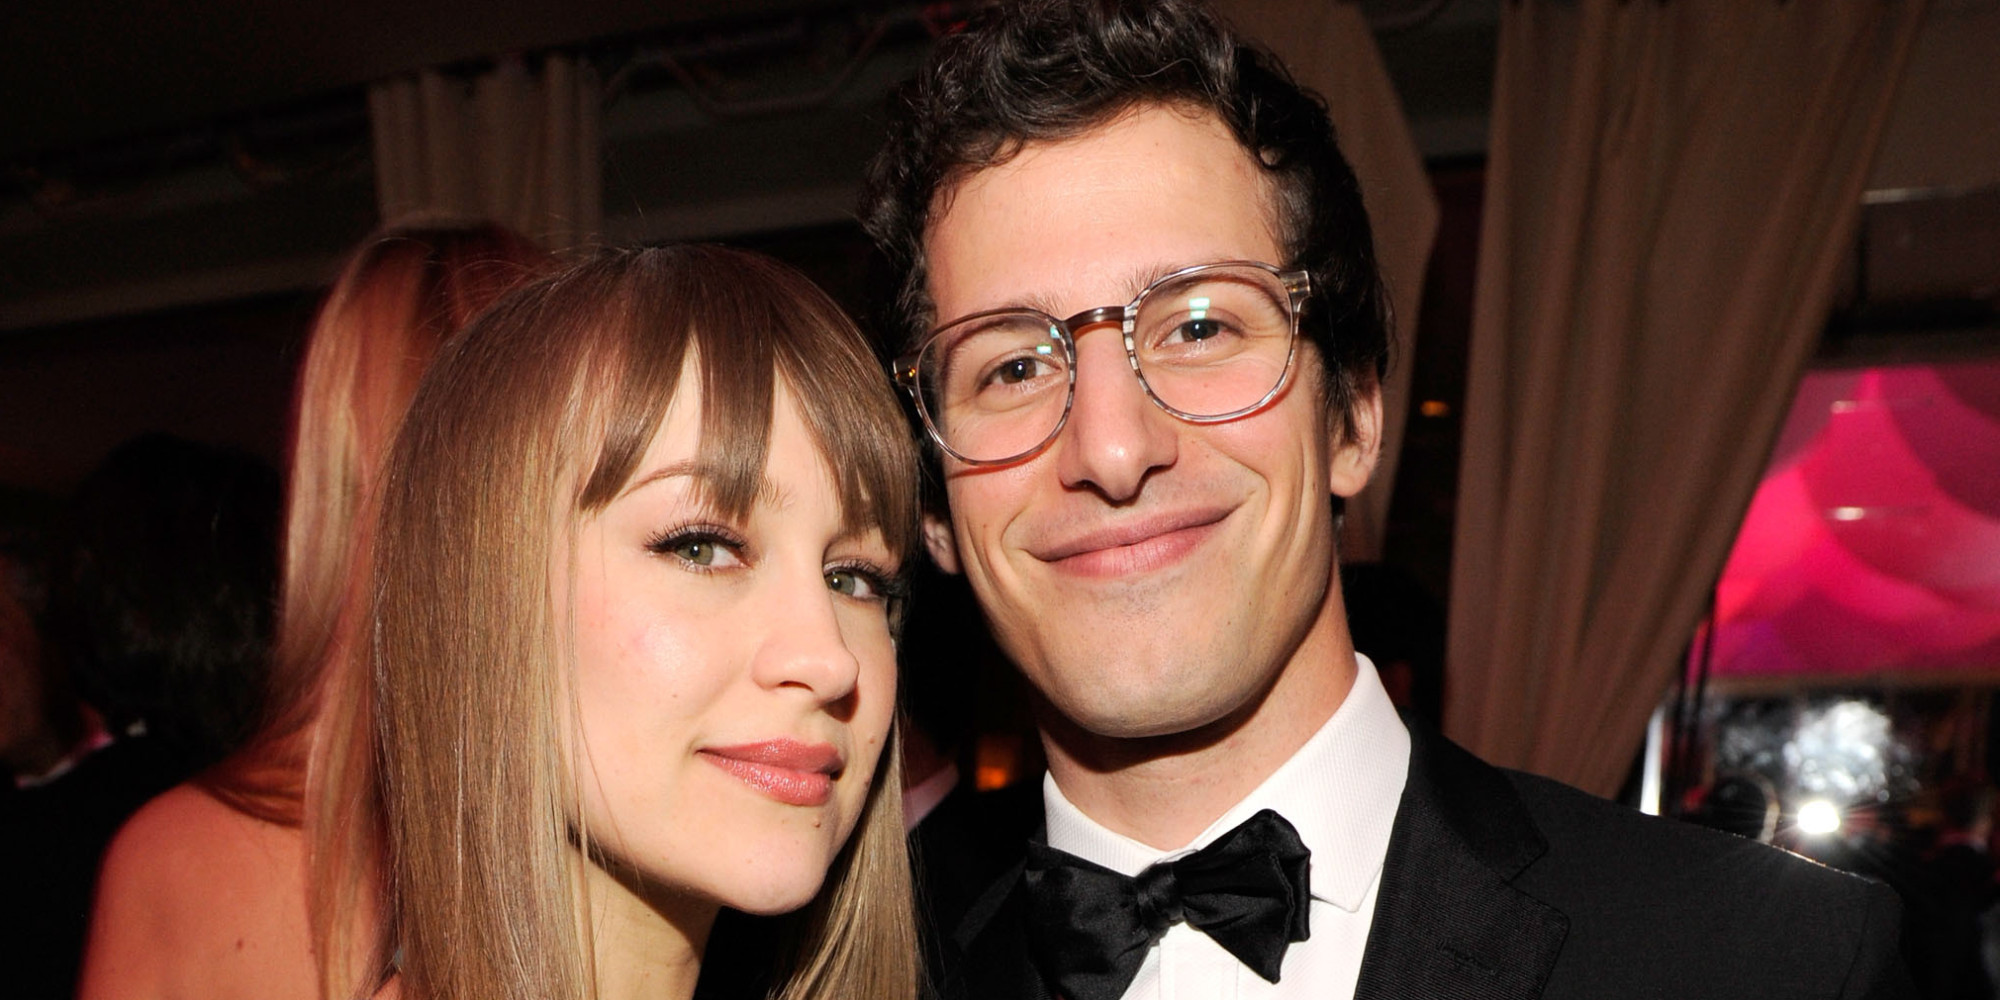 Andy Samberg Marries Singer Joanna Newsom